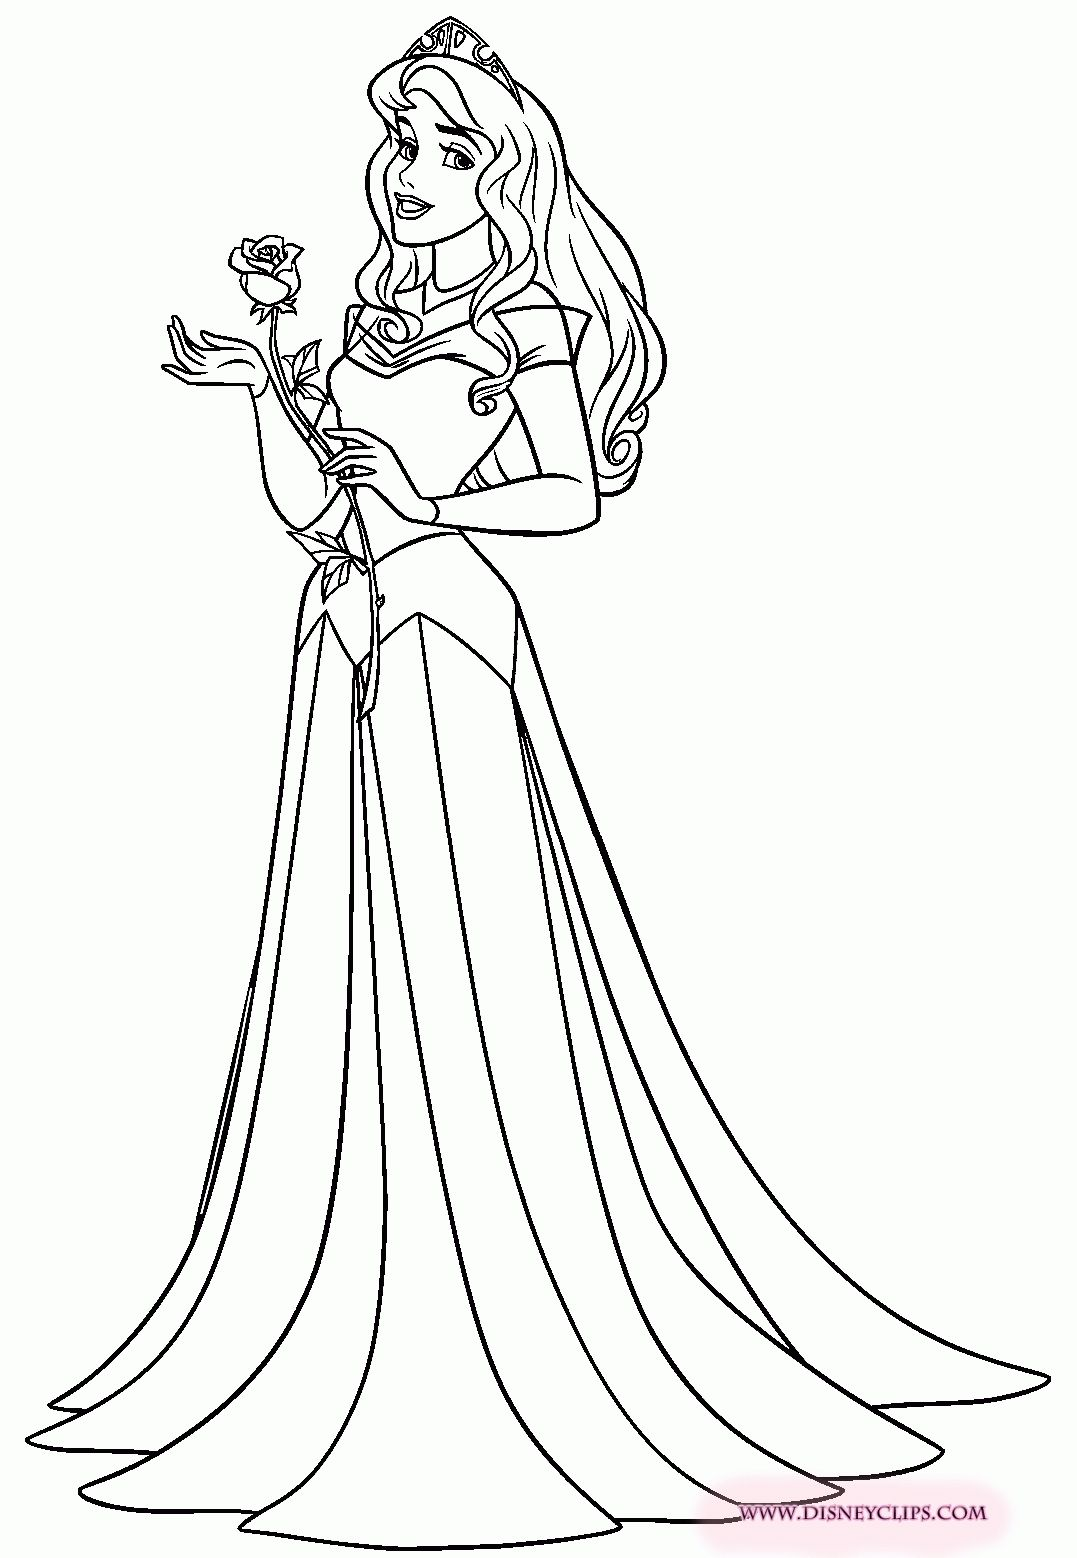 Aurora Disney Coloring Pages Disney princess colors